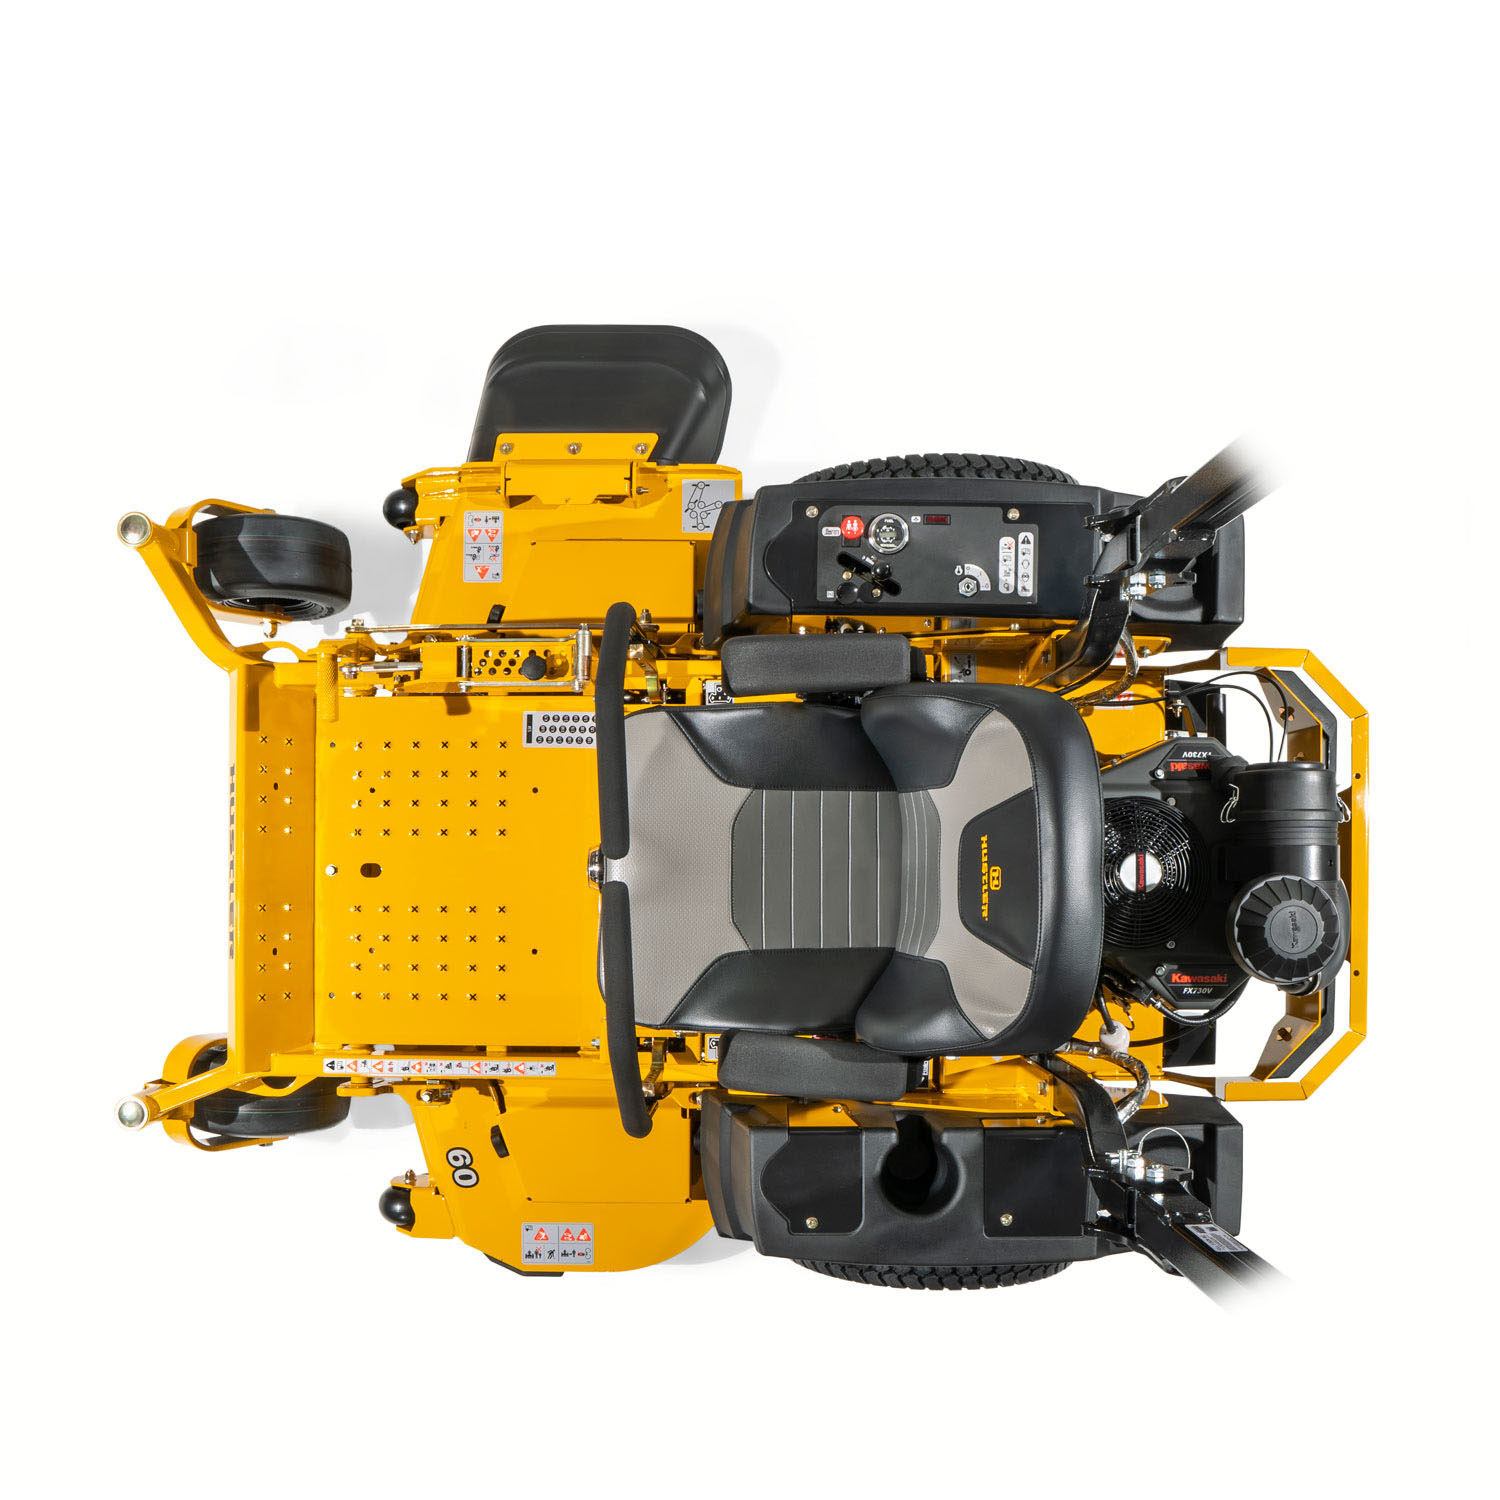 Image of a yellow zero-turn mower from above